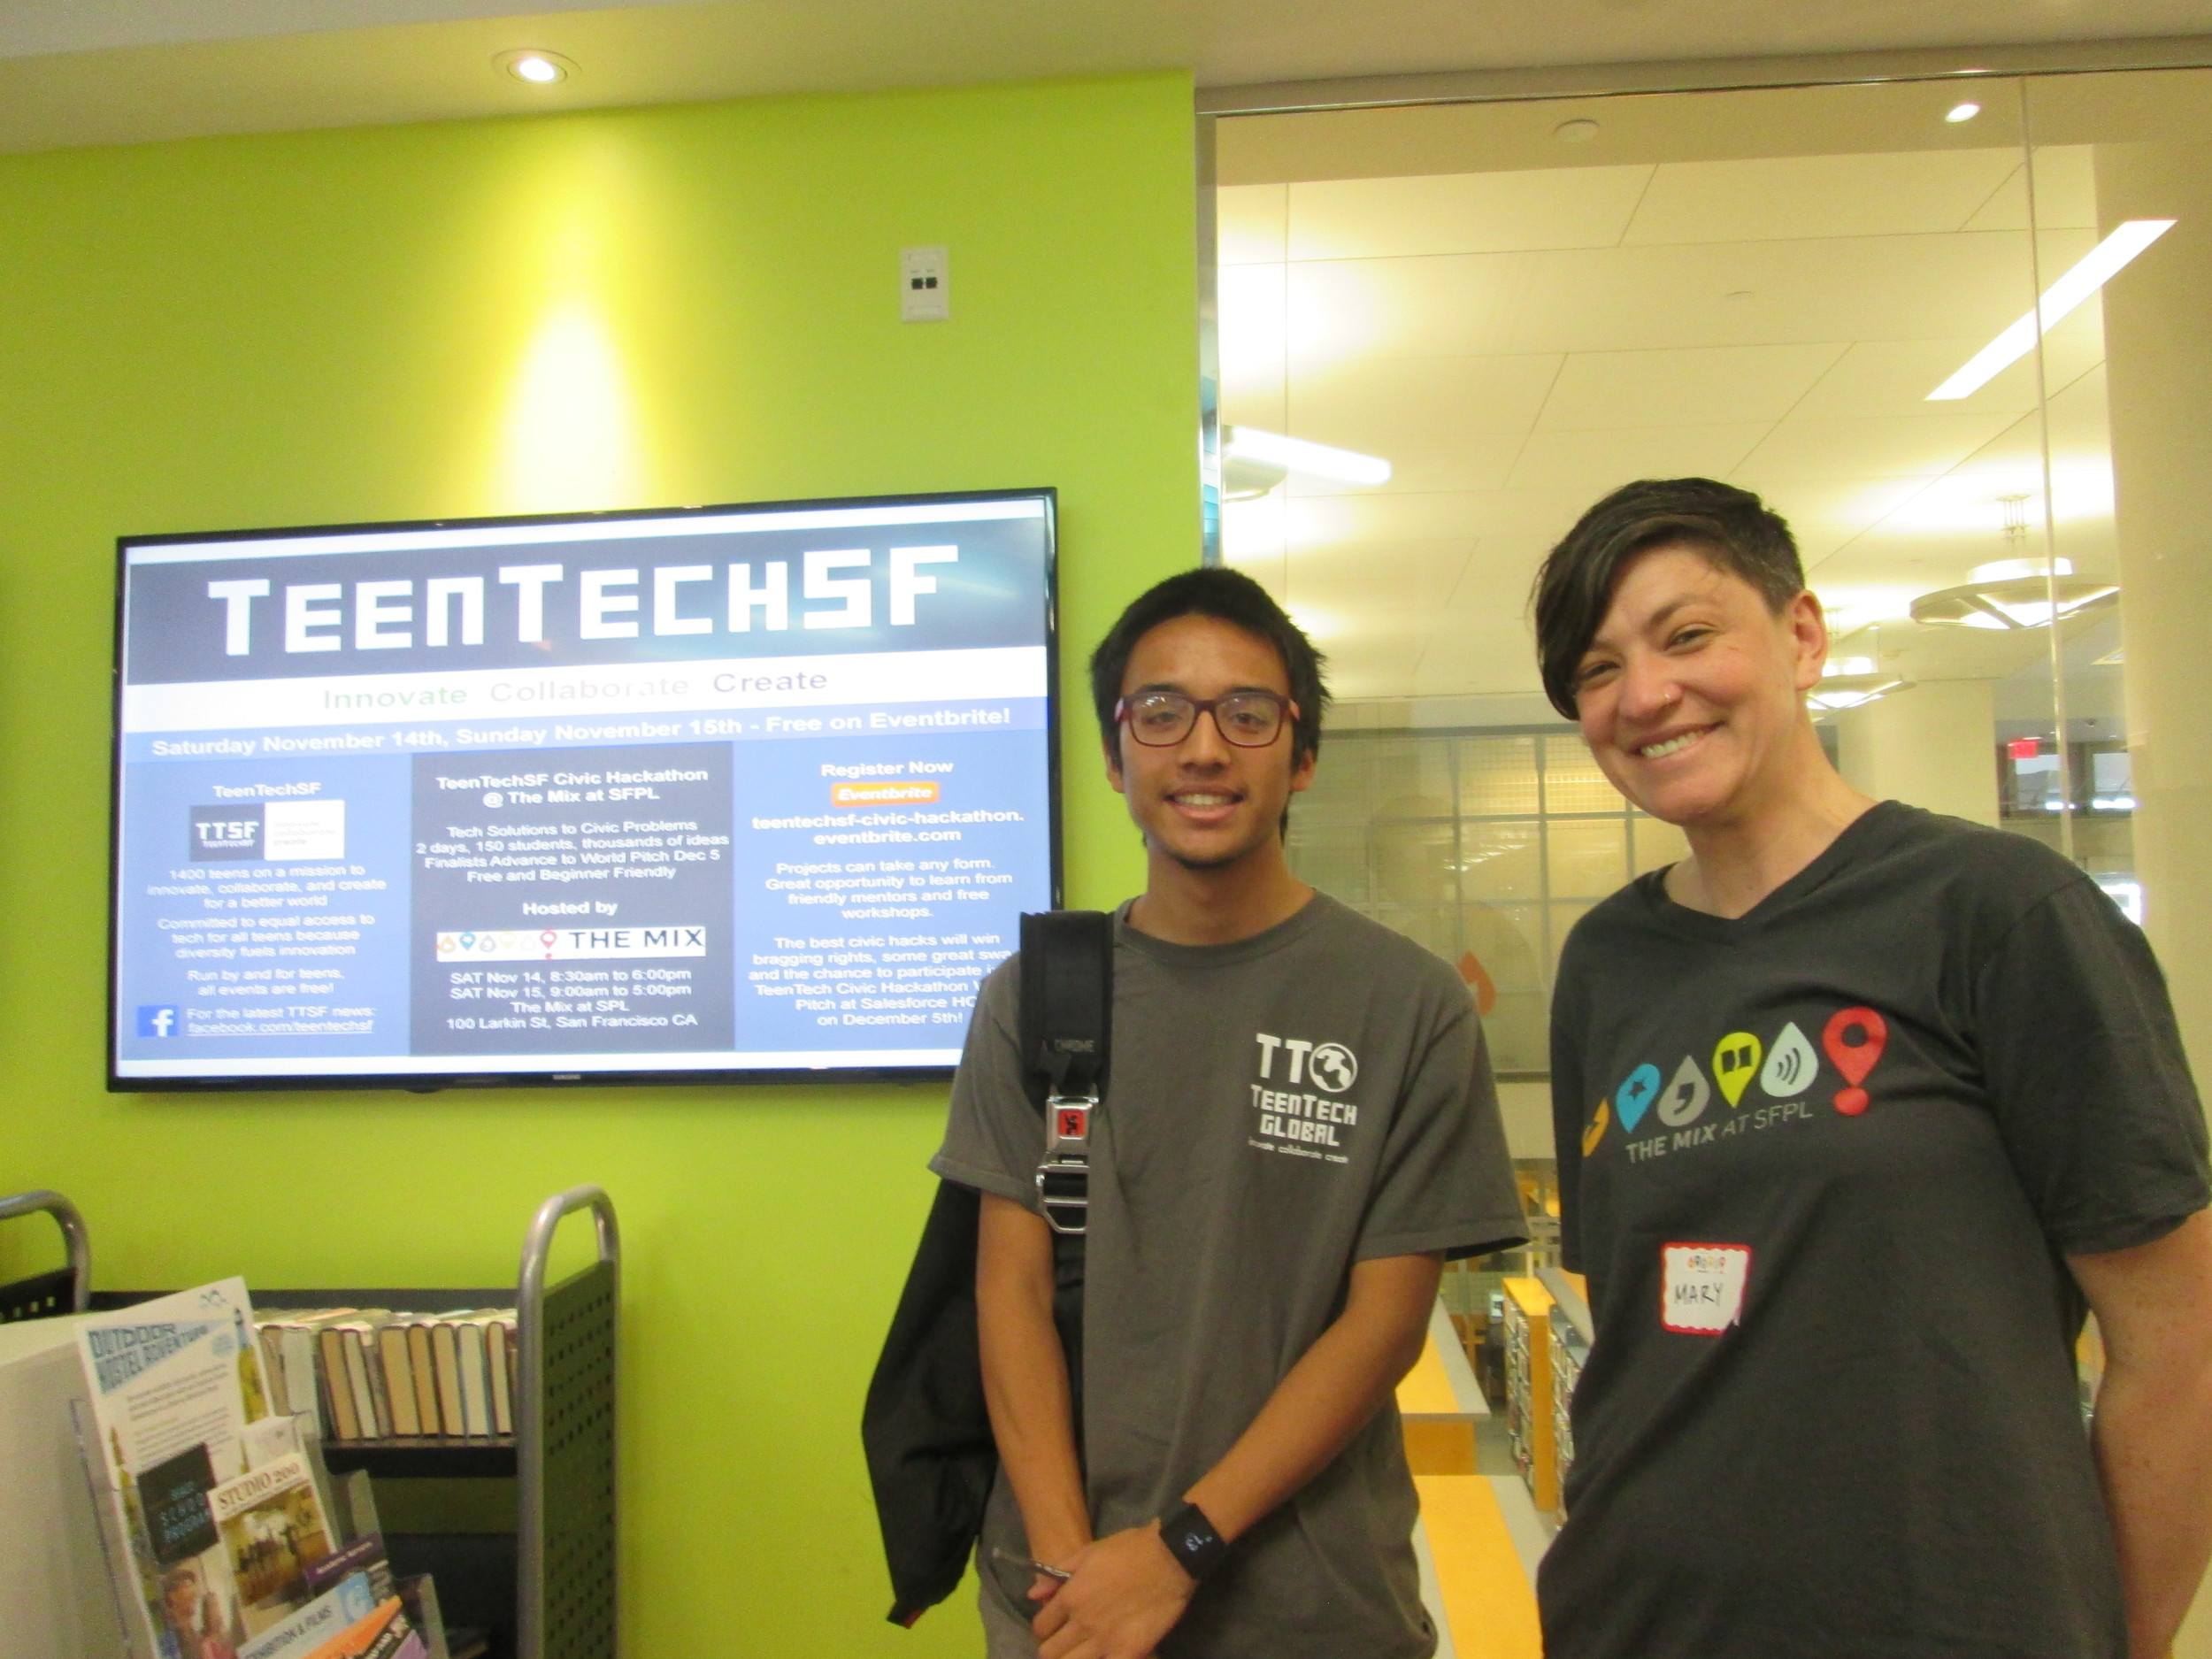 @TheMixatSFPL: TeenTechSF Founder Marc Robert Wong w/ The Mix Teen Librarian Mary Abler